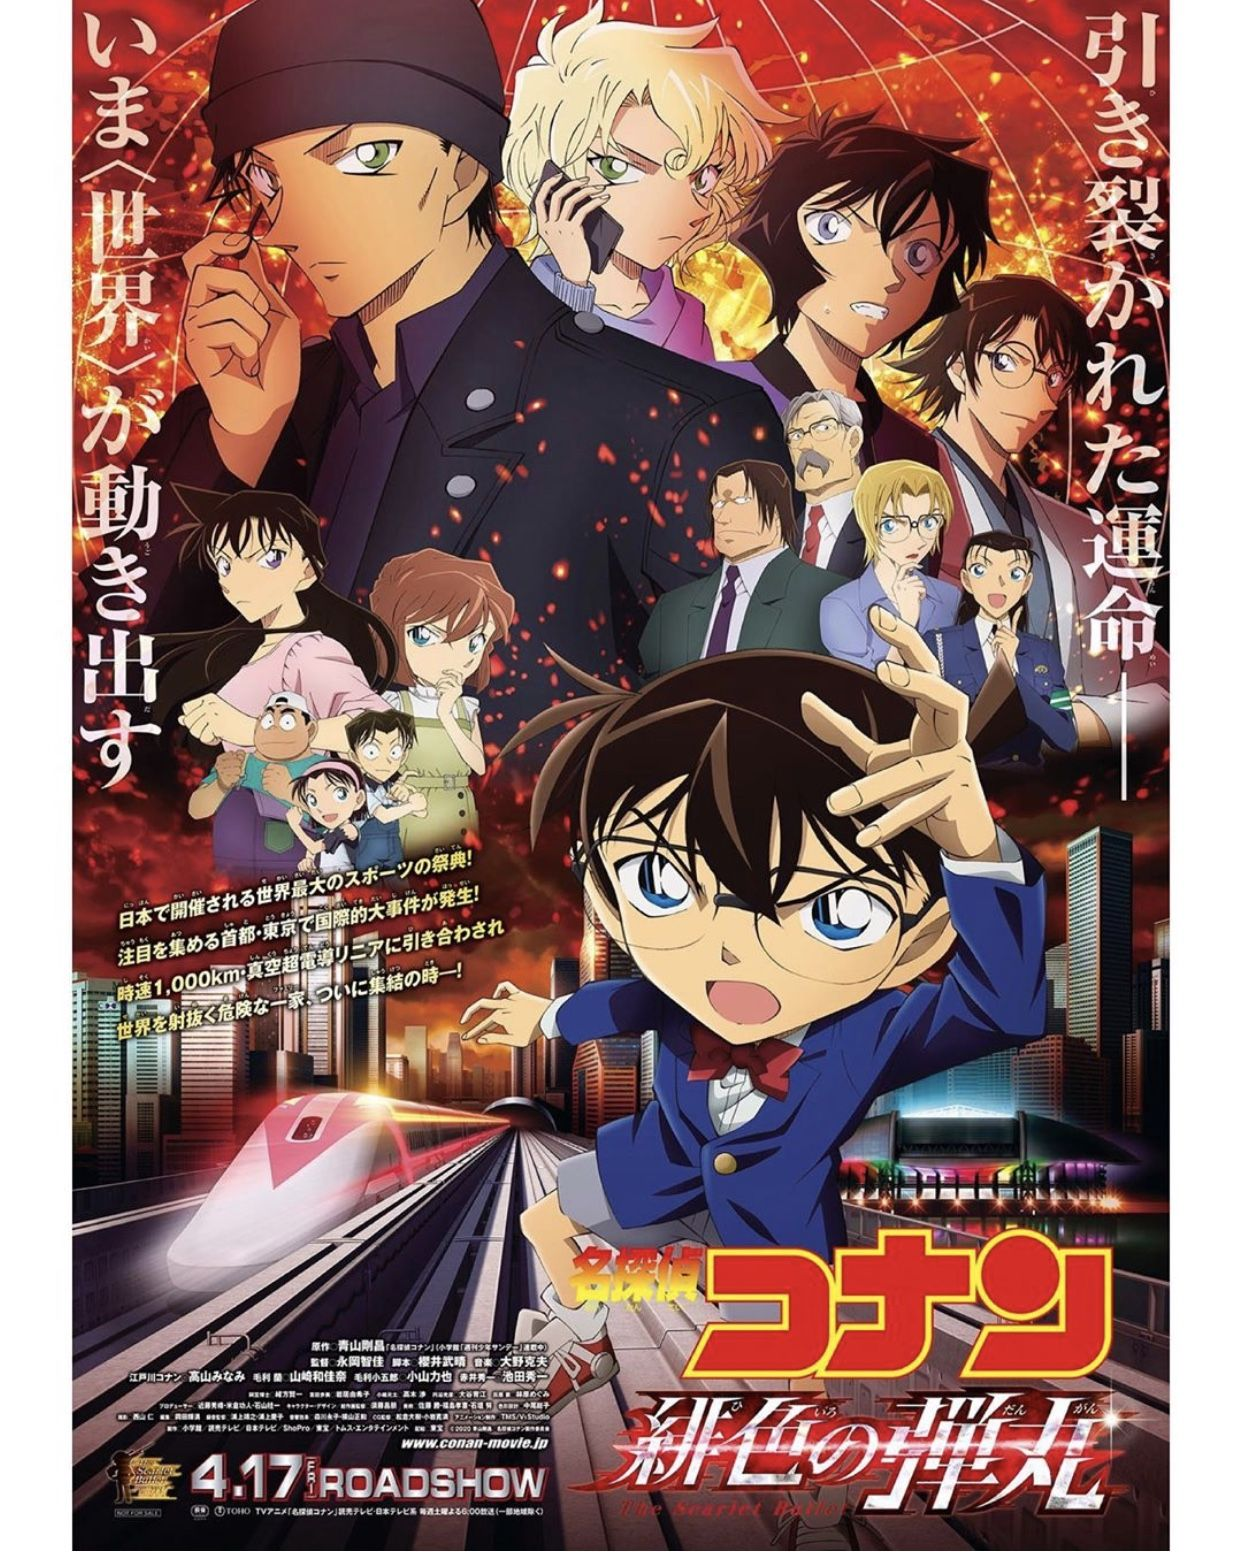 Pin by Reham on Detective conan in 2020 Conan movie